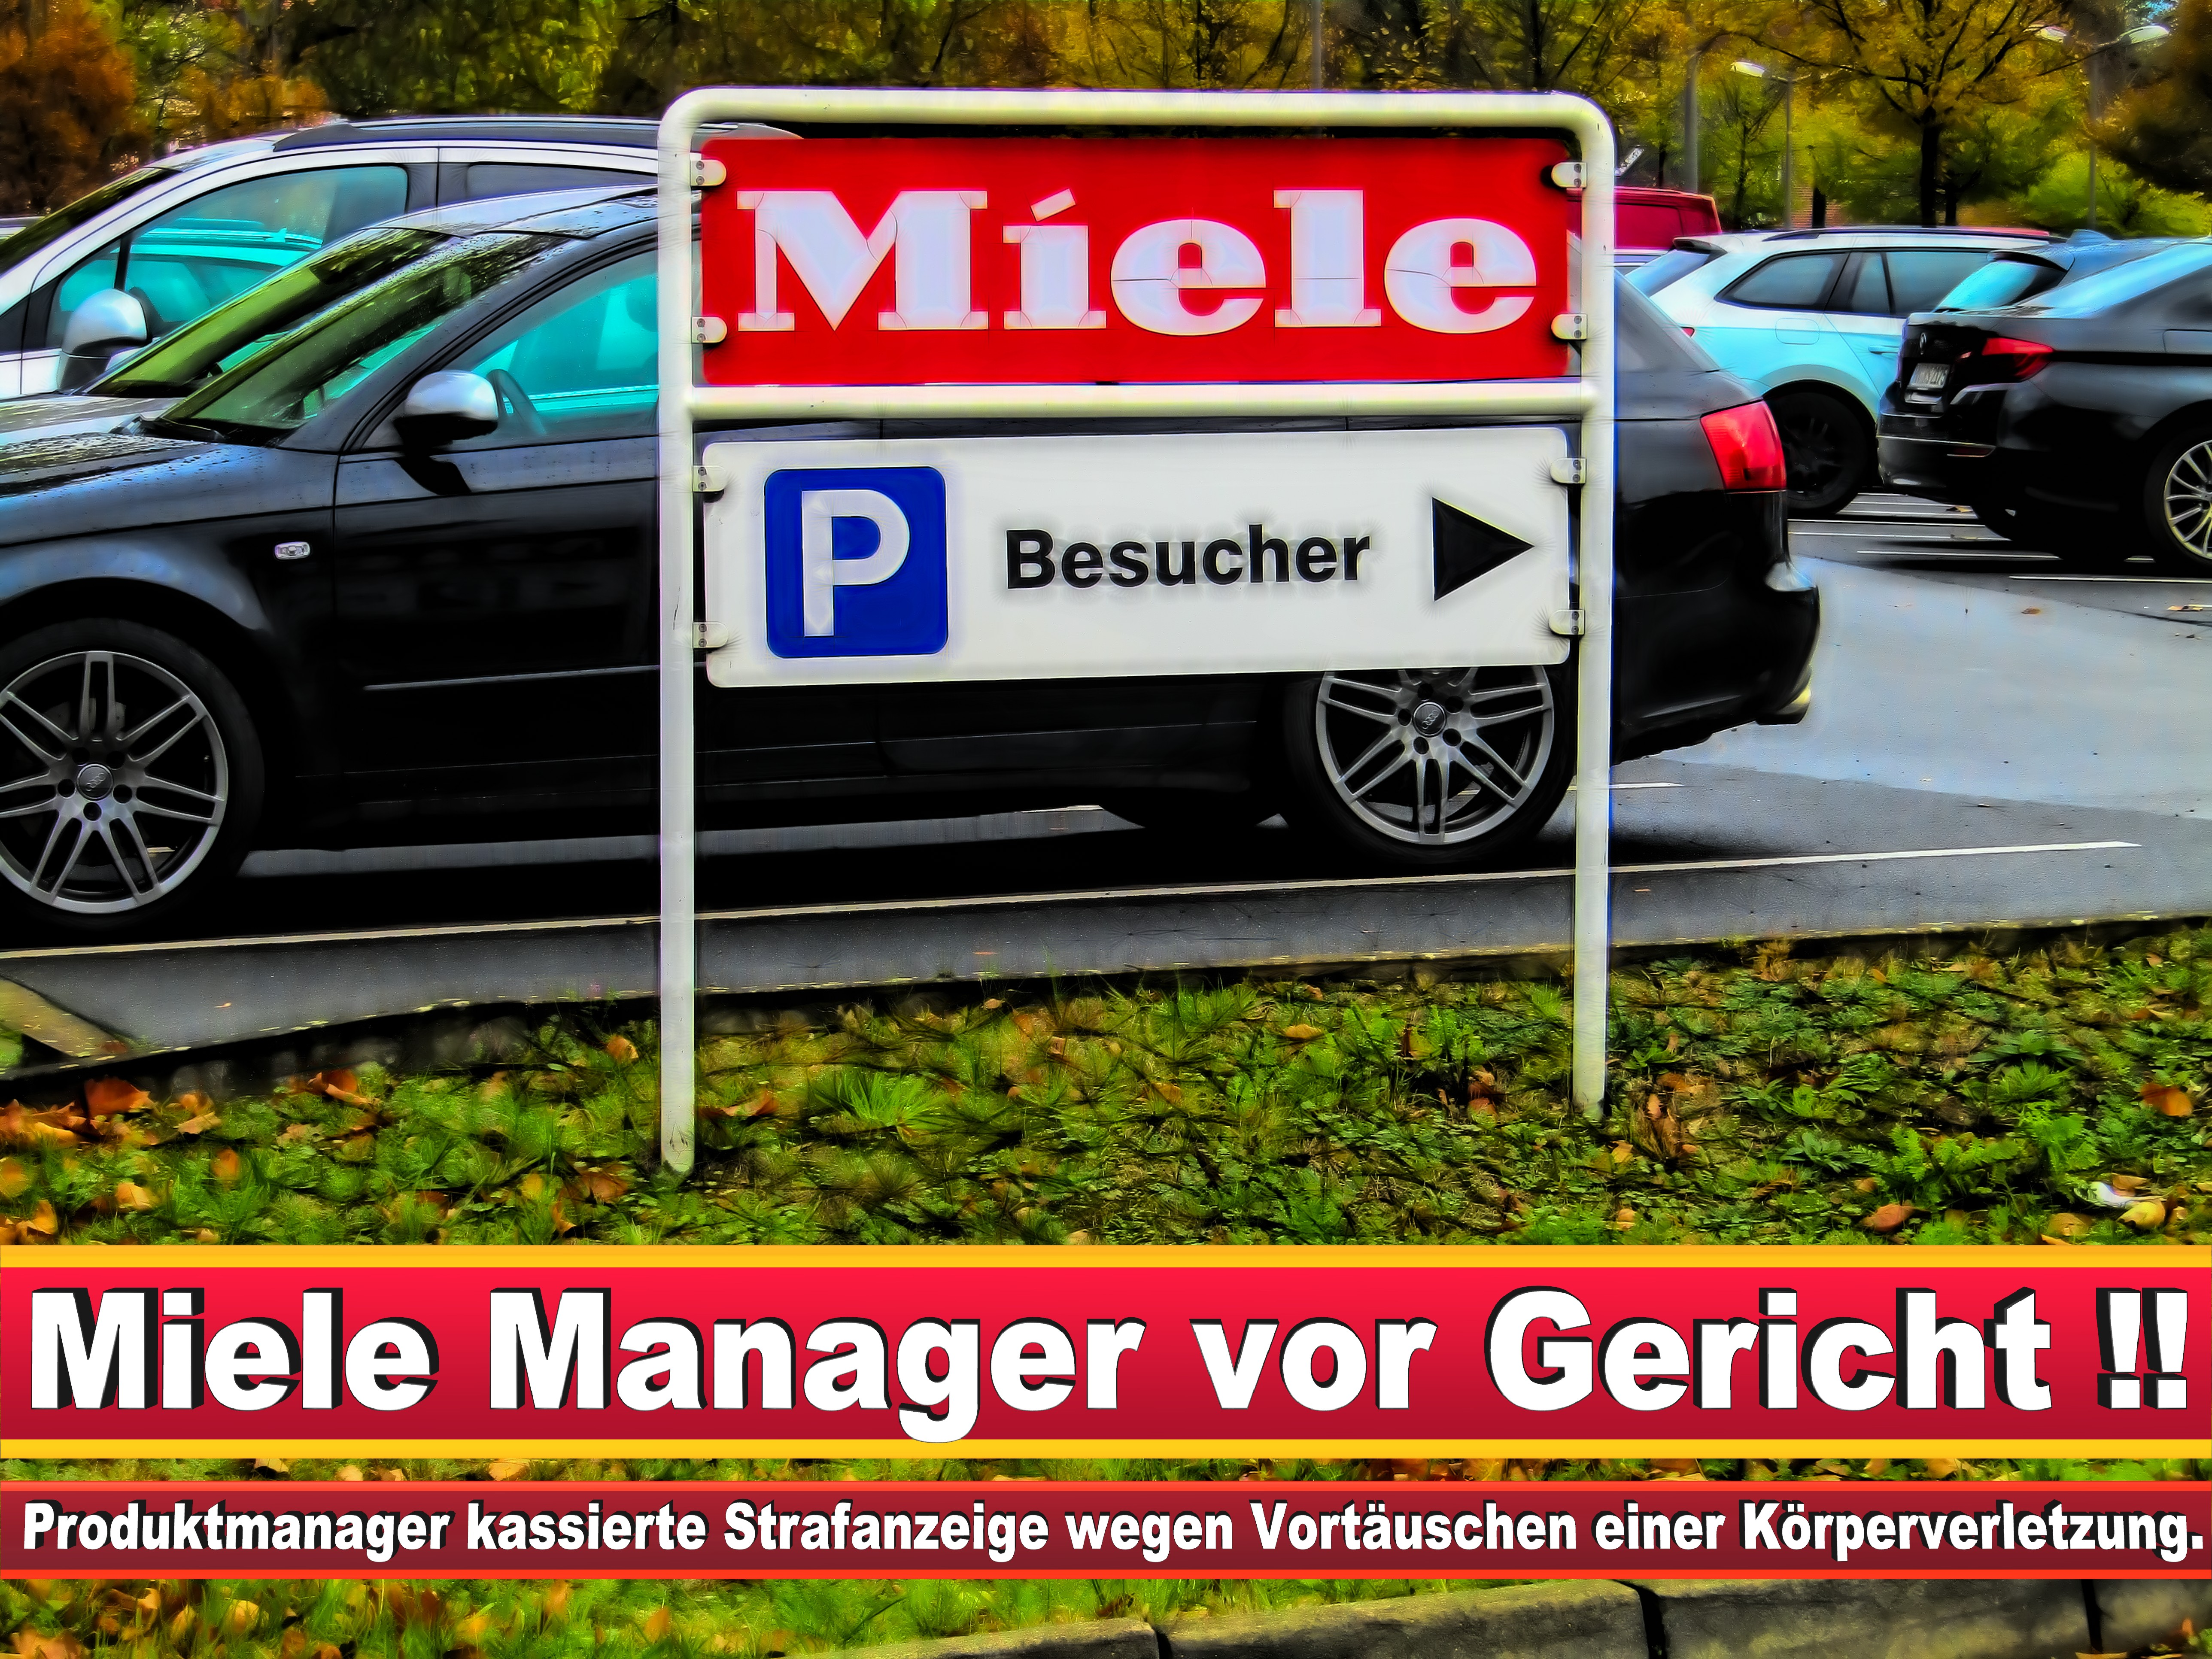 Miele gütersloh personalabteilung